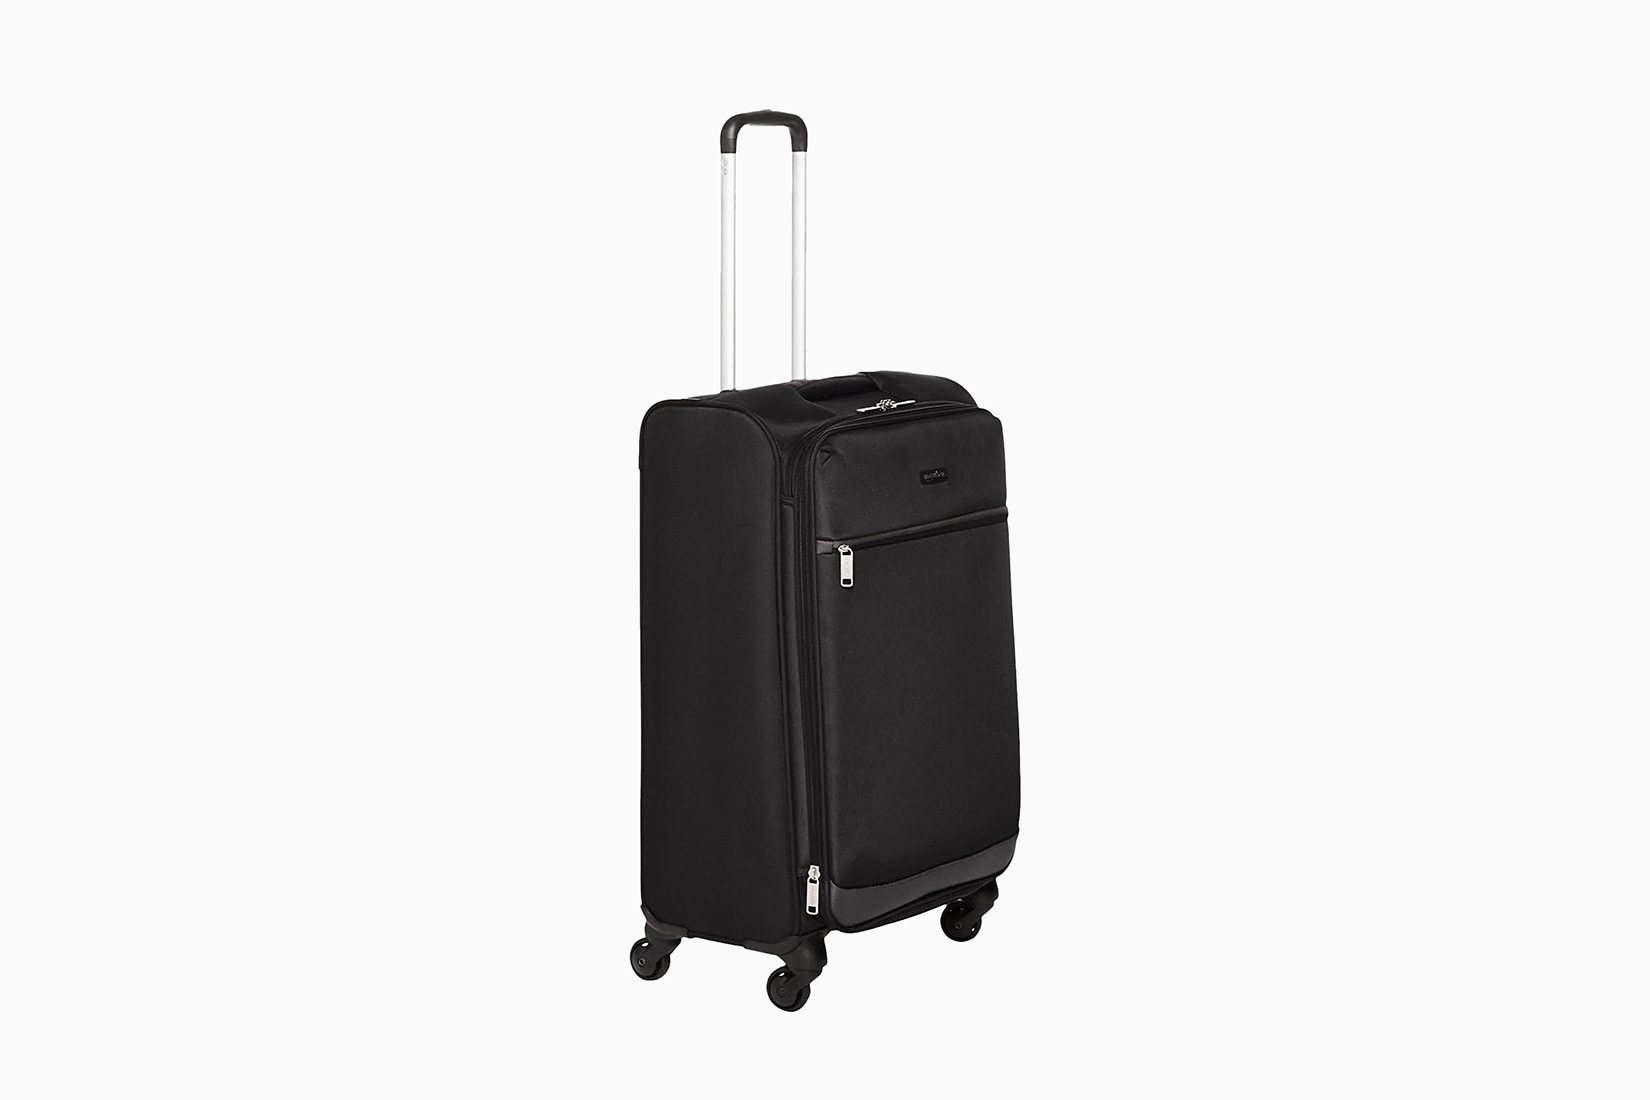 best luggage brands suitcase affordable AmazonBasics - Luxe Digital